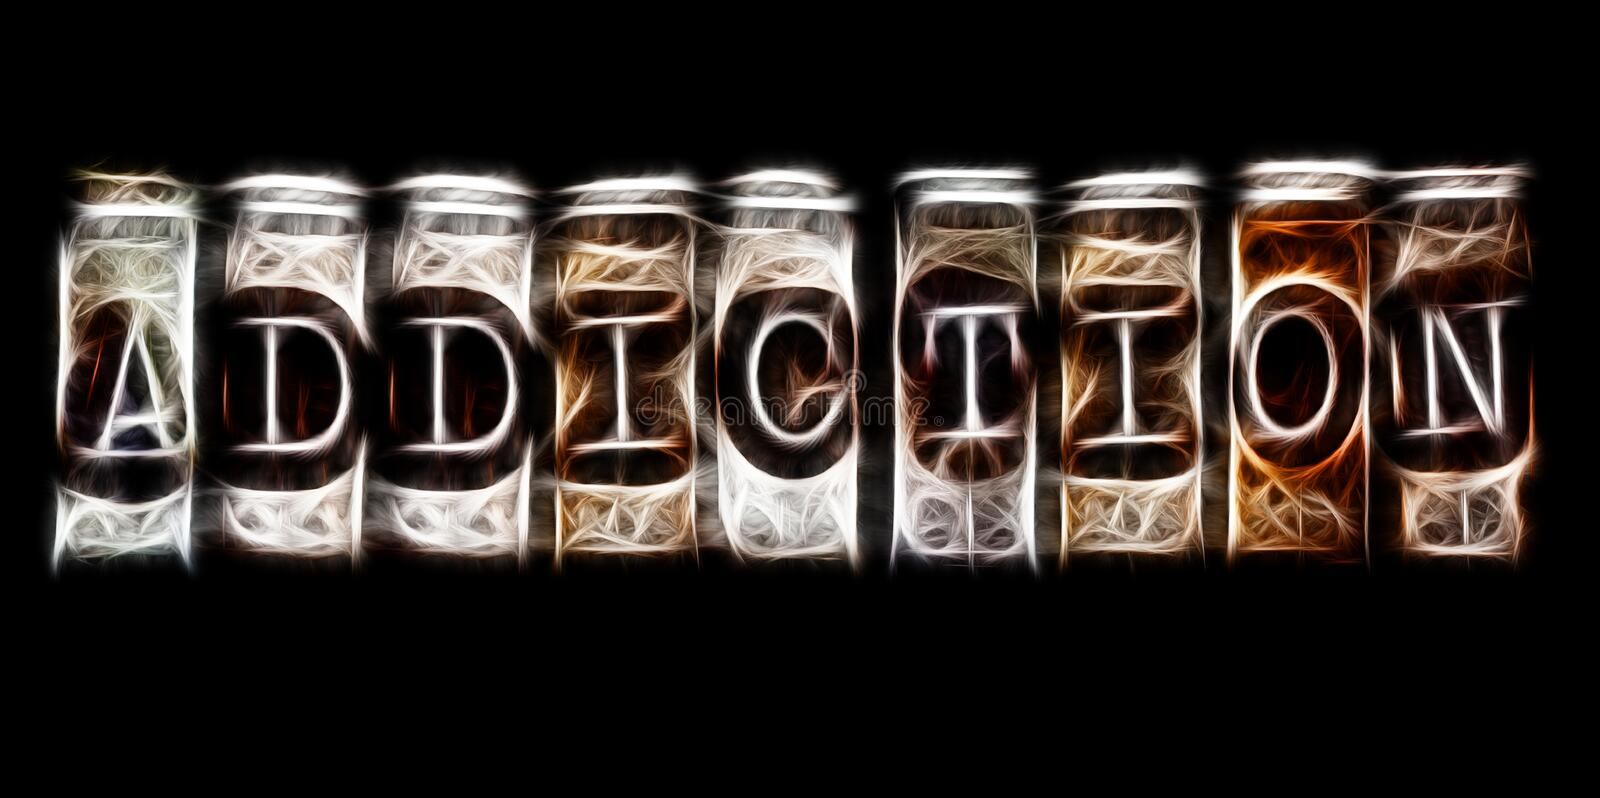 Download Addiction concept stock illustration. Image of word, addictive - 35421893